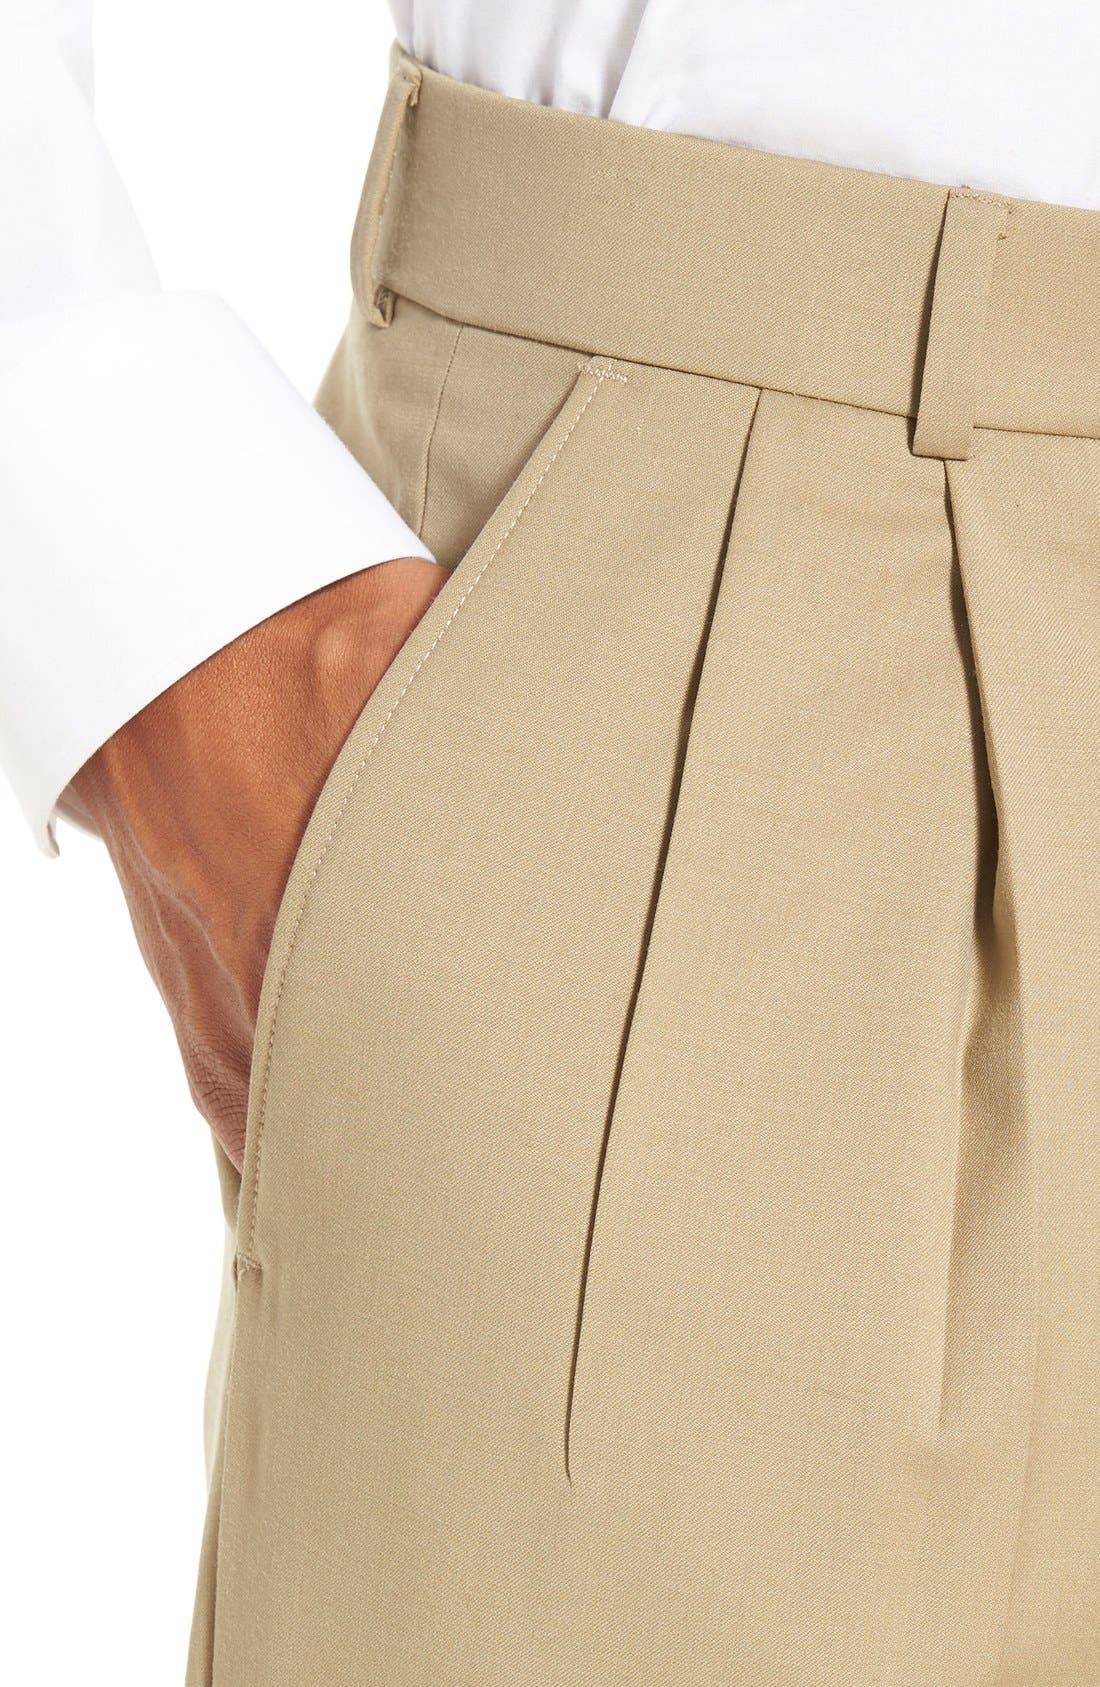 Pleated Solid Wool Trousers,                             Alternate thumbnail 48, color,